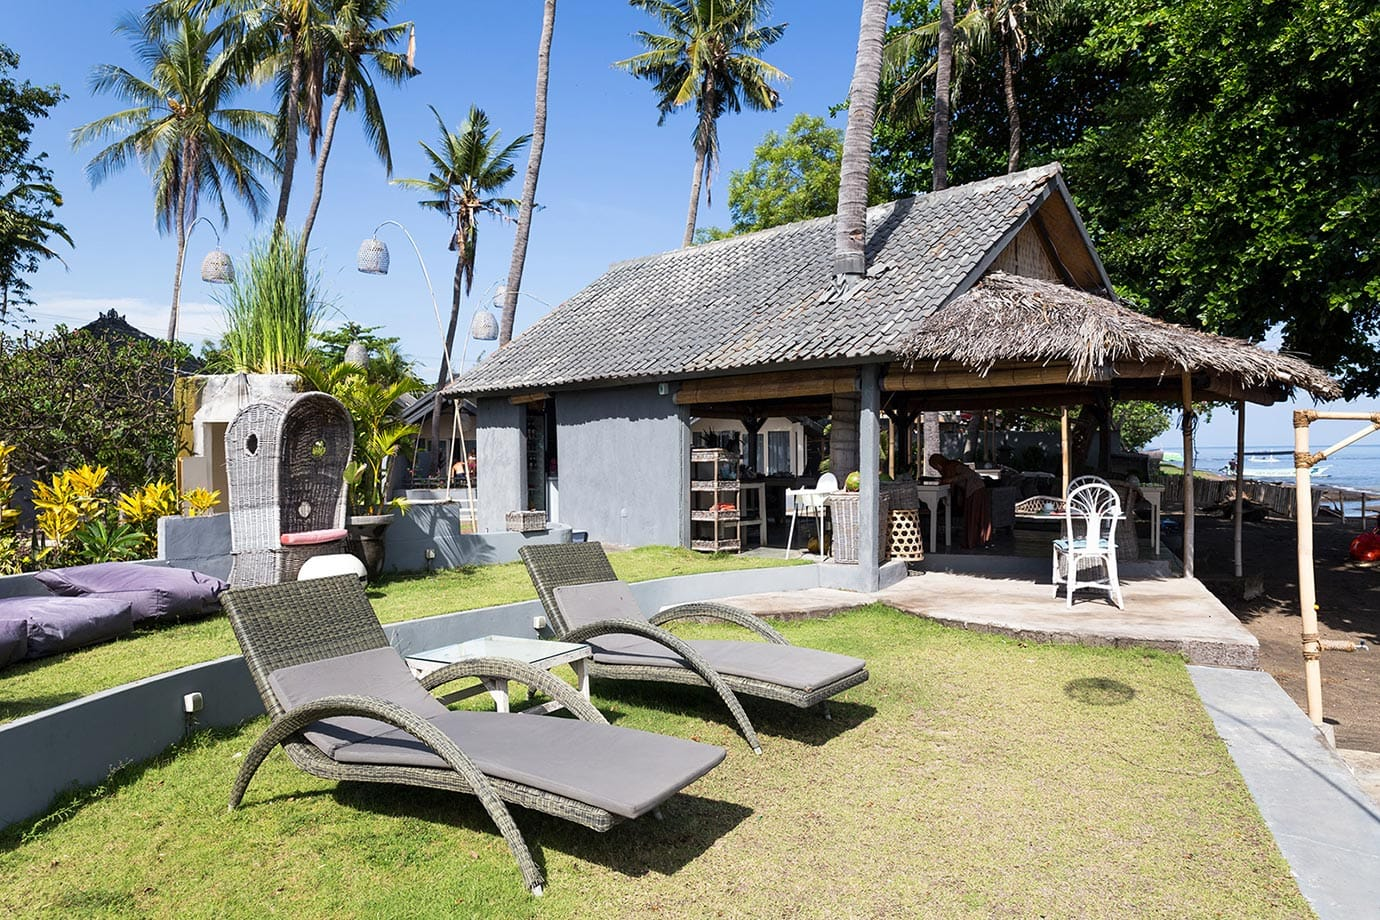 Sun loungers at Lilin Lovina